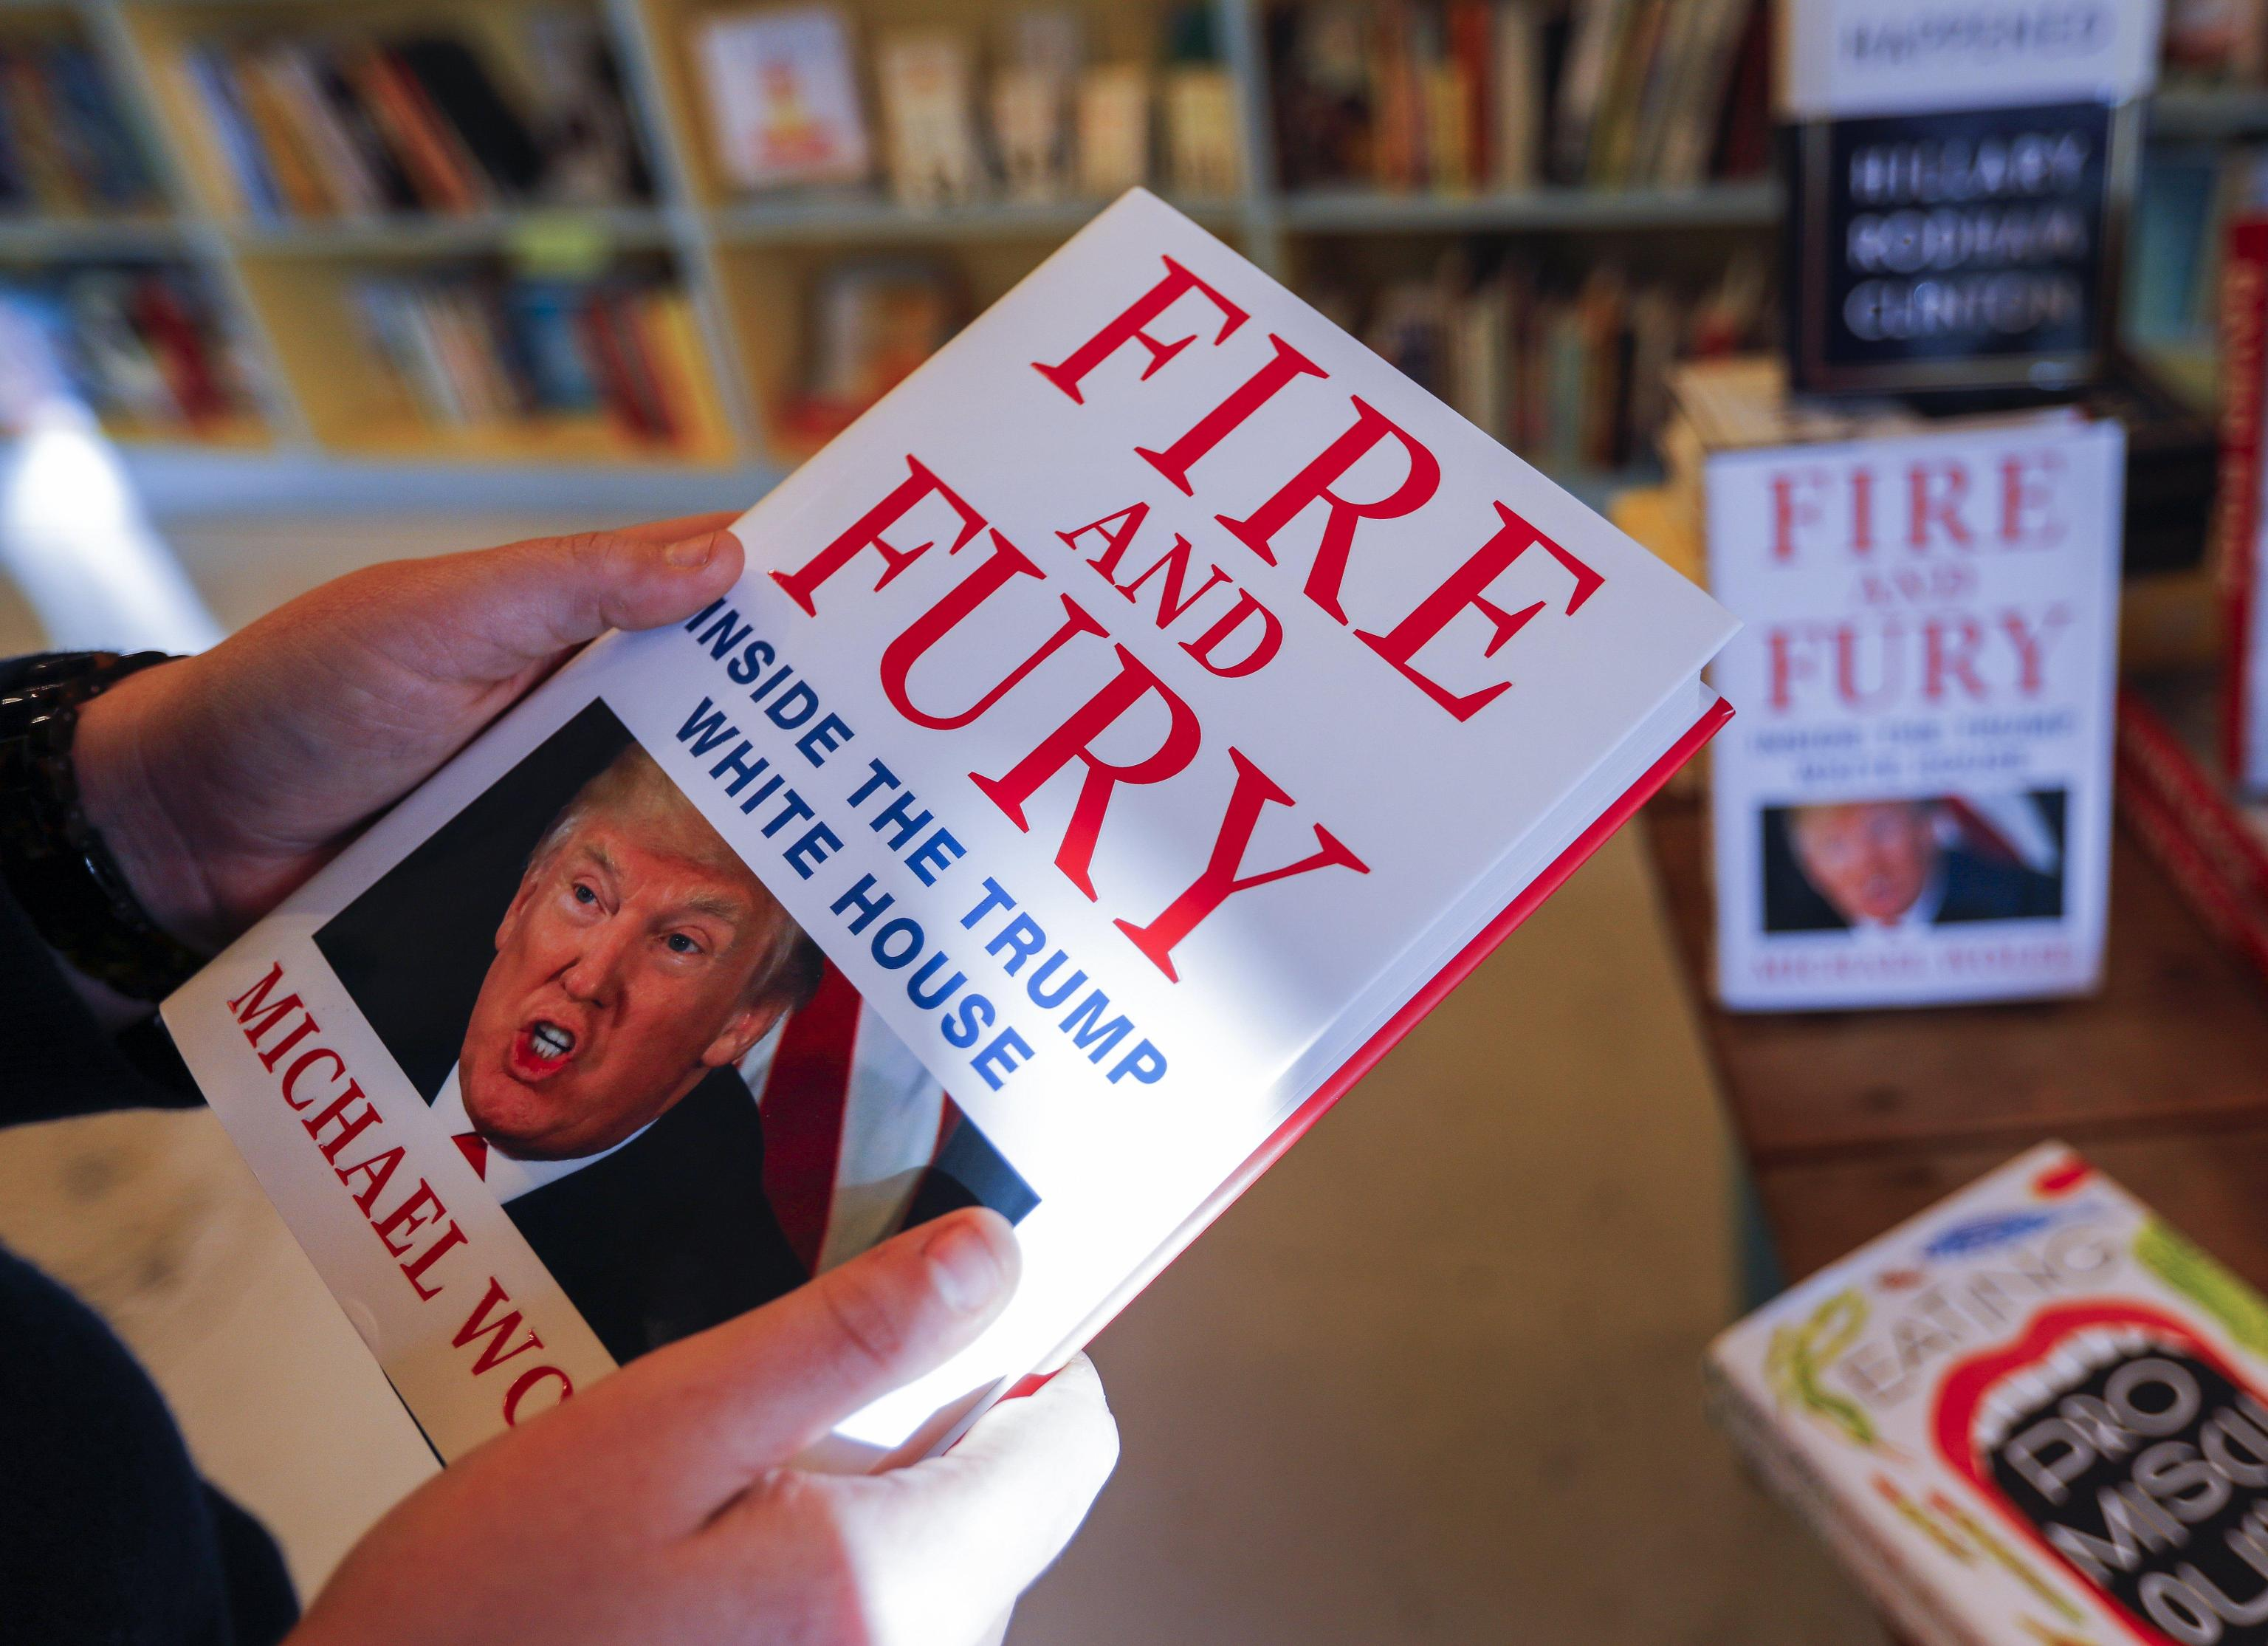 Isis dà link per scaricare Fire and Fury